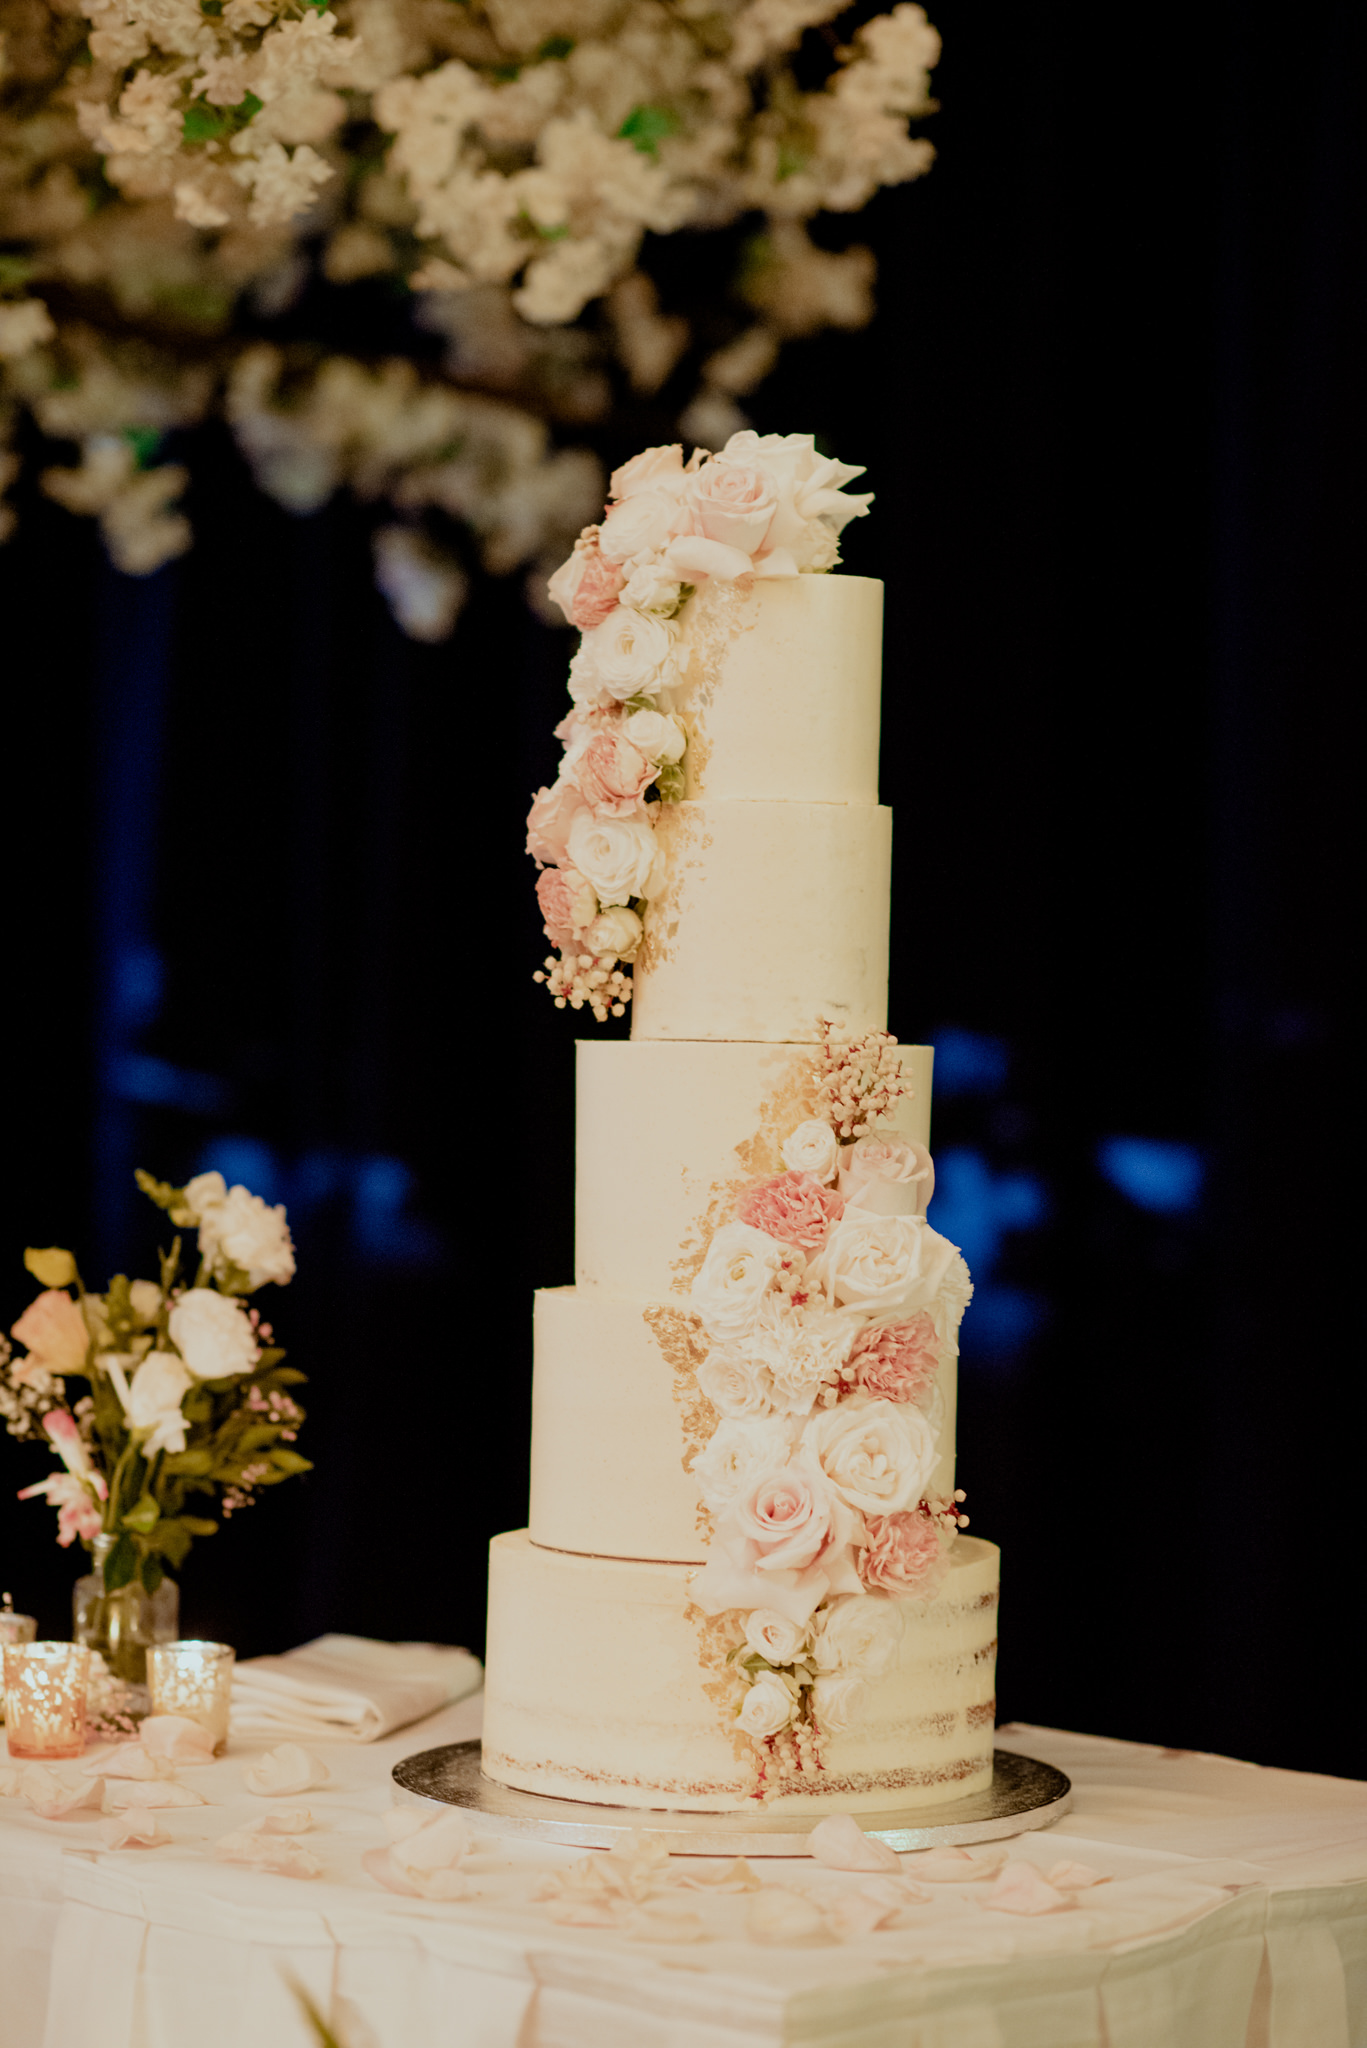 A five tiered white wedding cake with flowers on a table